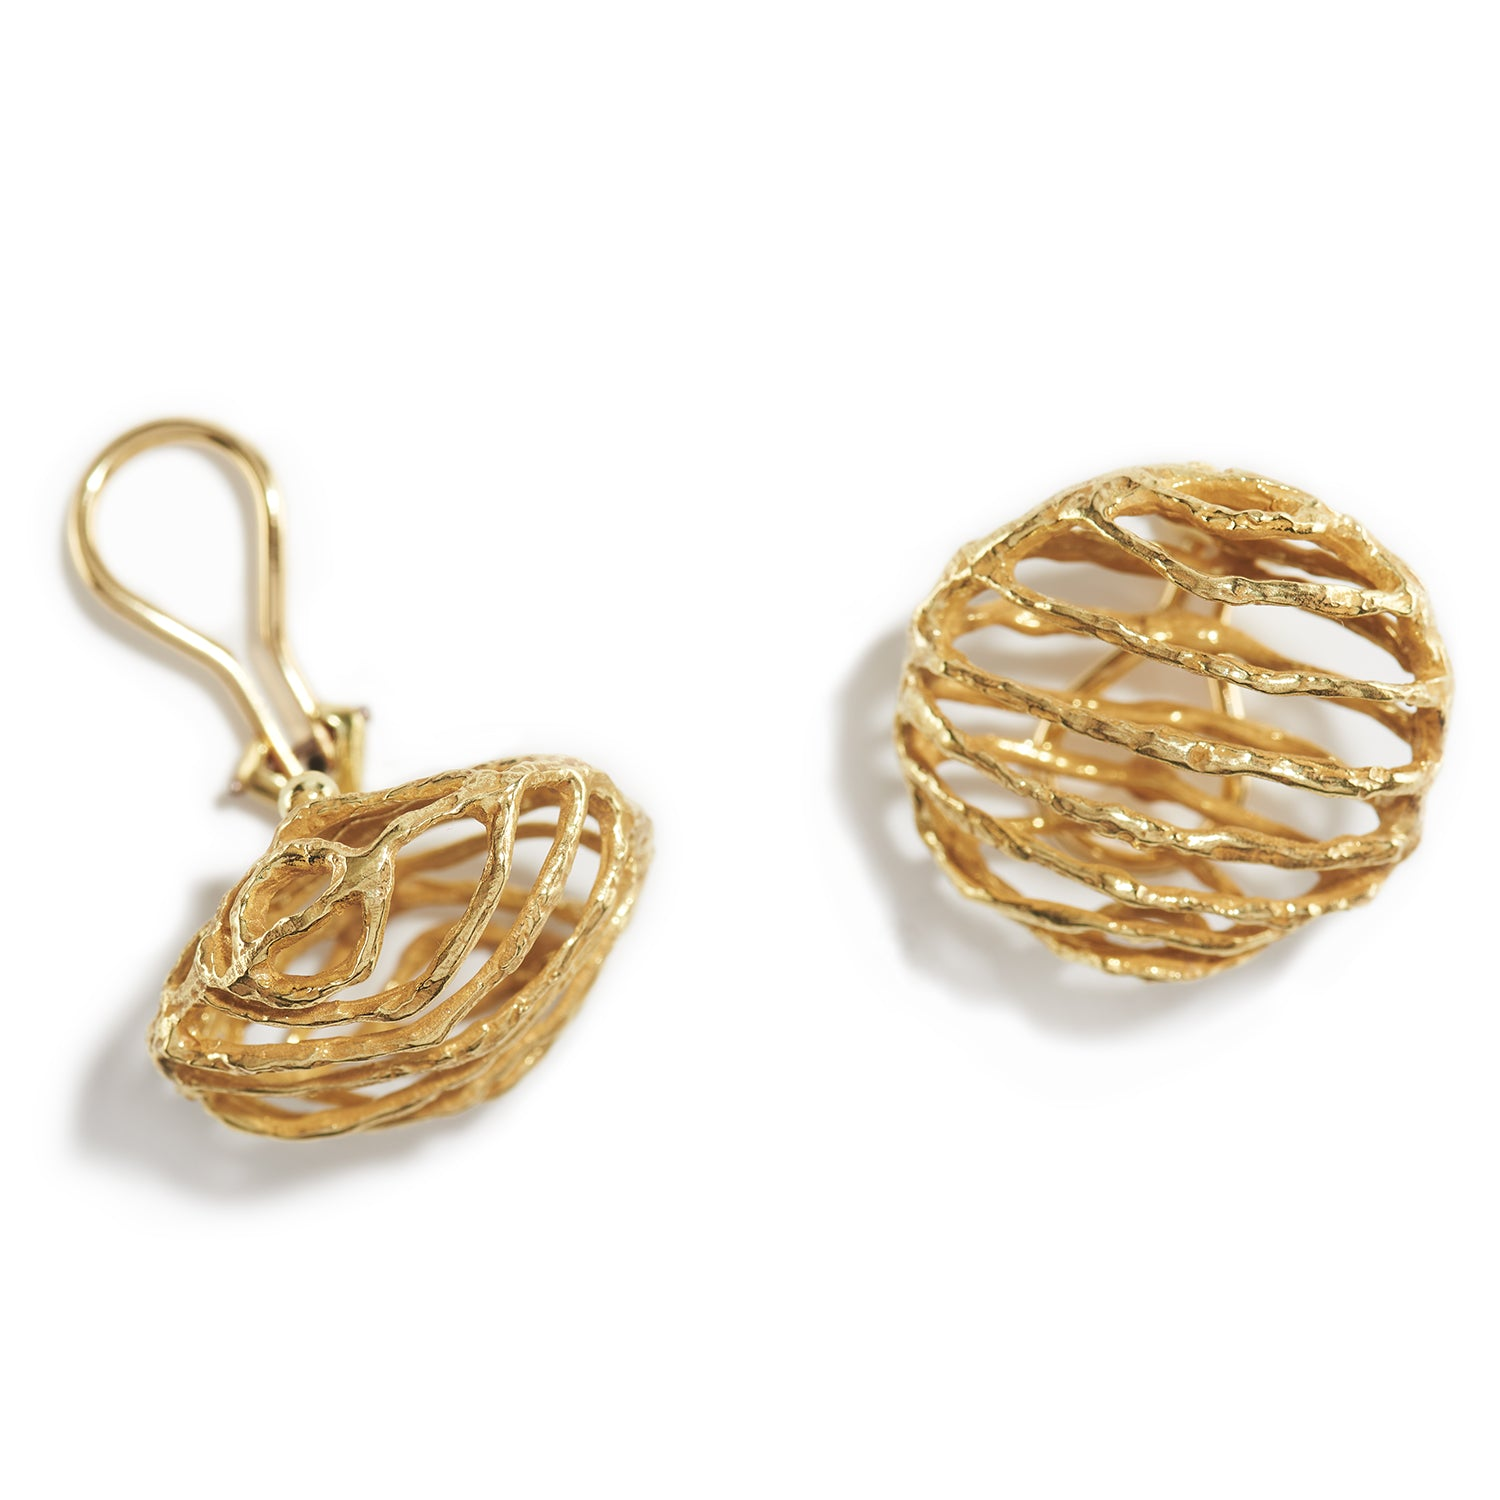 Small Basket Clip Earrings